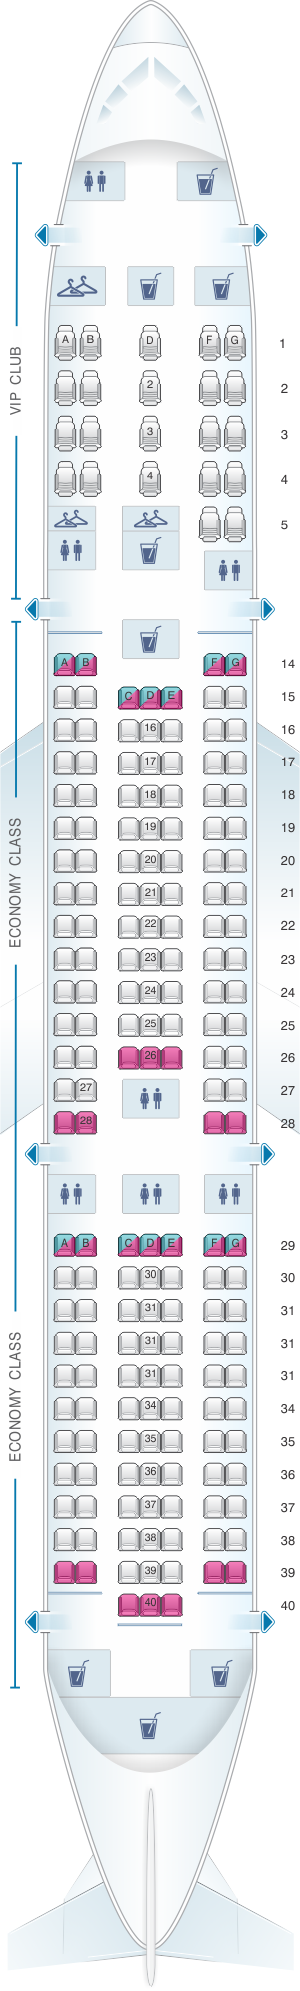 Seat map for Azal Azerbaijan Airlines Boeing B767 300ER